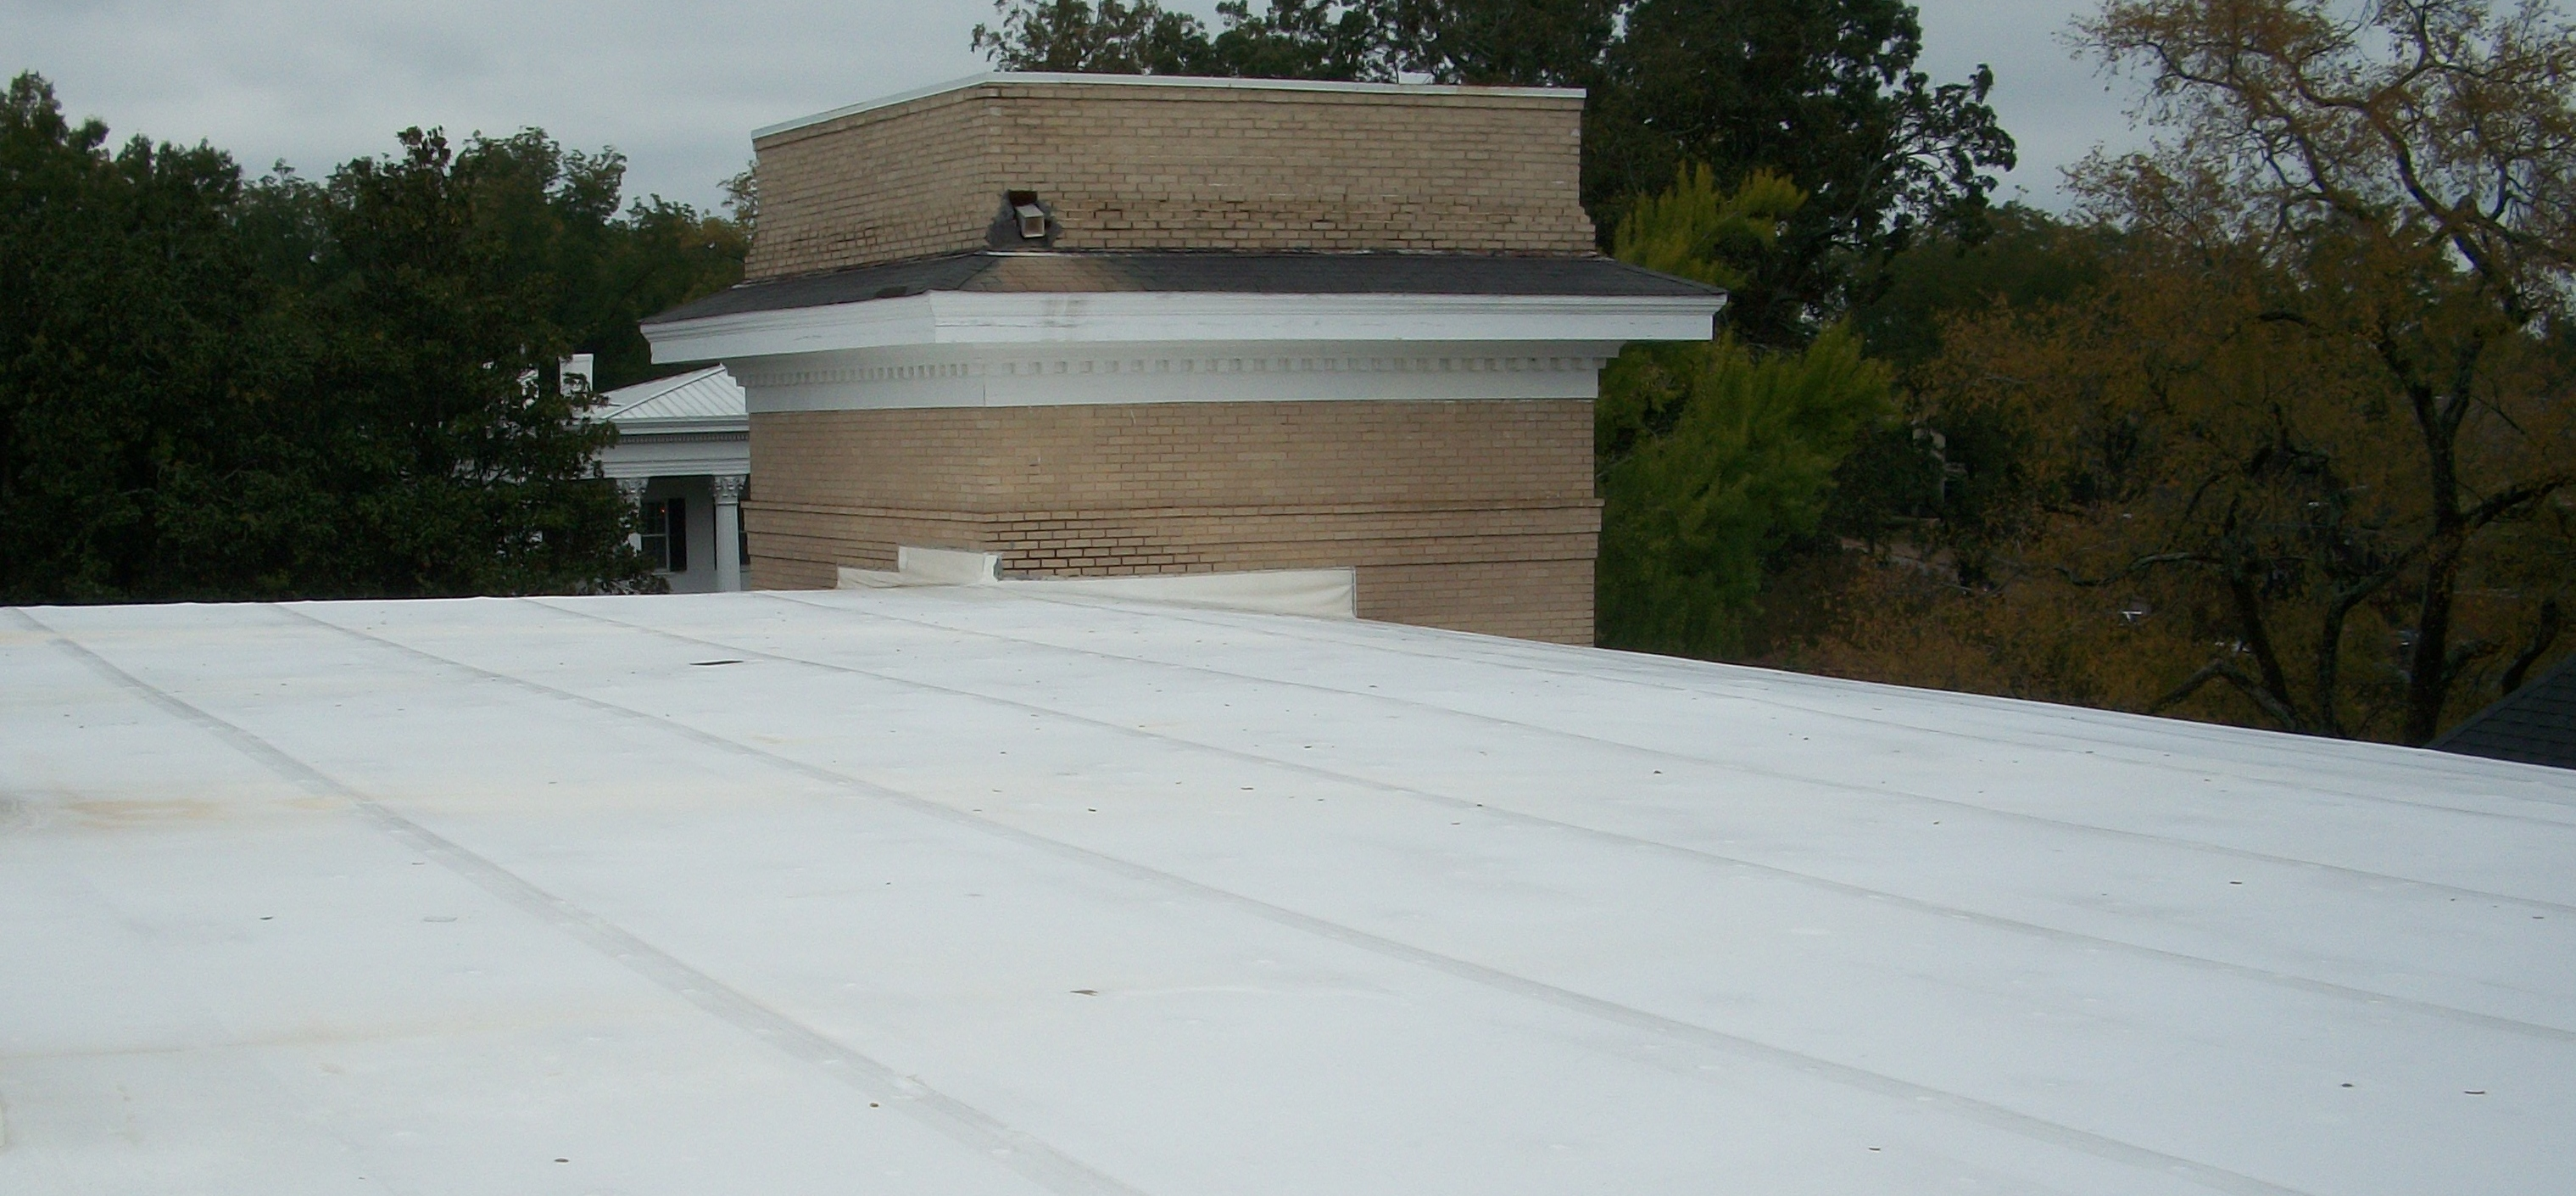 The work of our commercial metal roofing specialists in Toccoa, GA